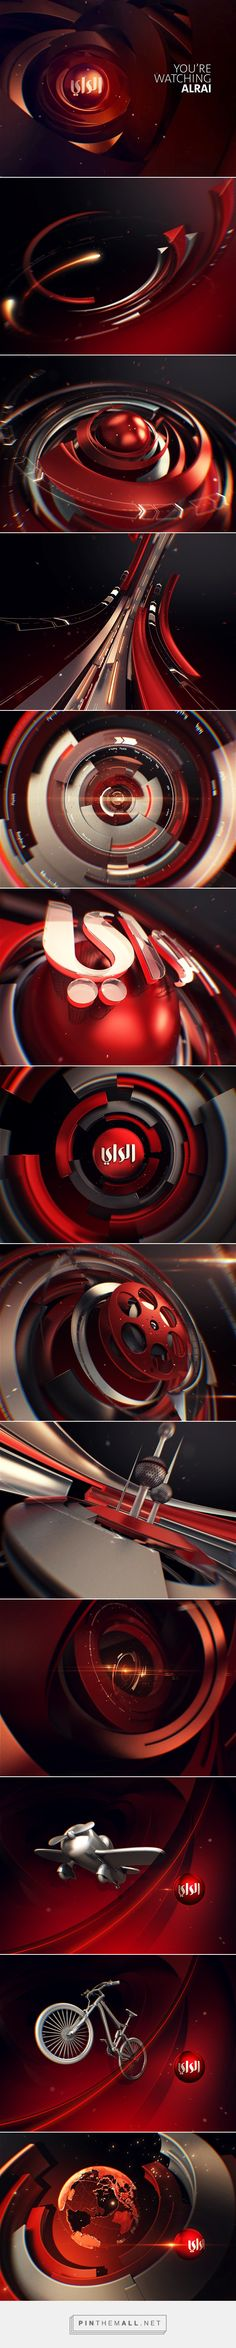 Alrai on Behance... - a grouped images picture - Pin Them All